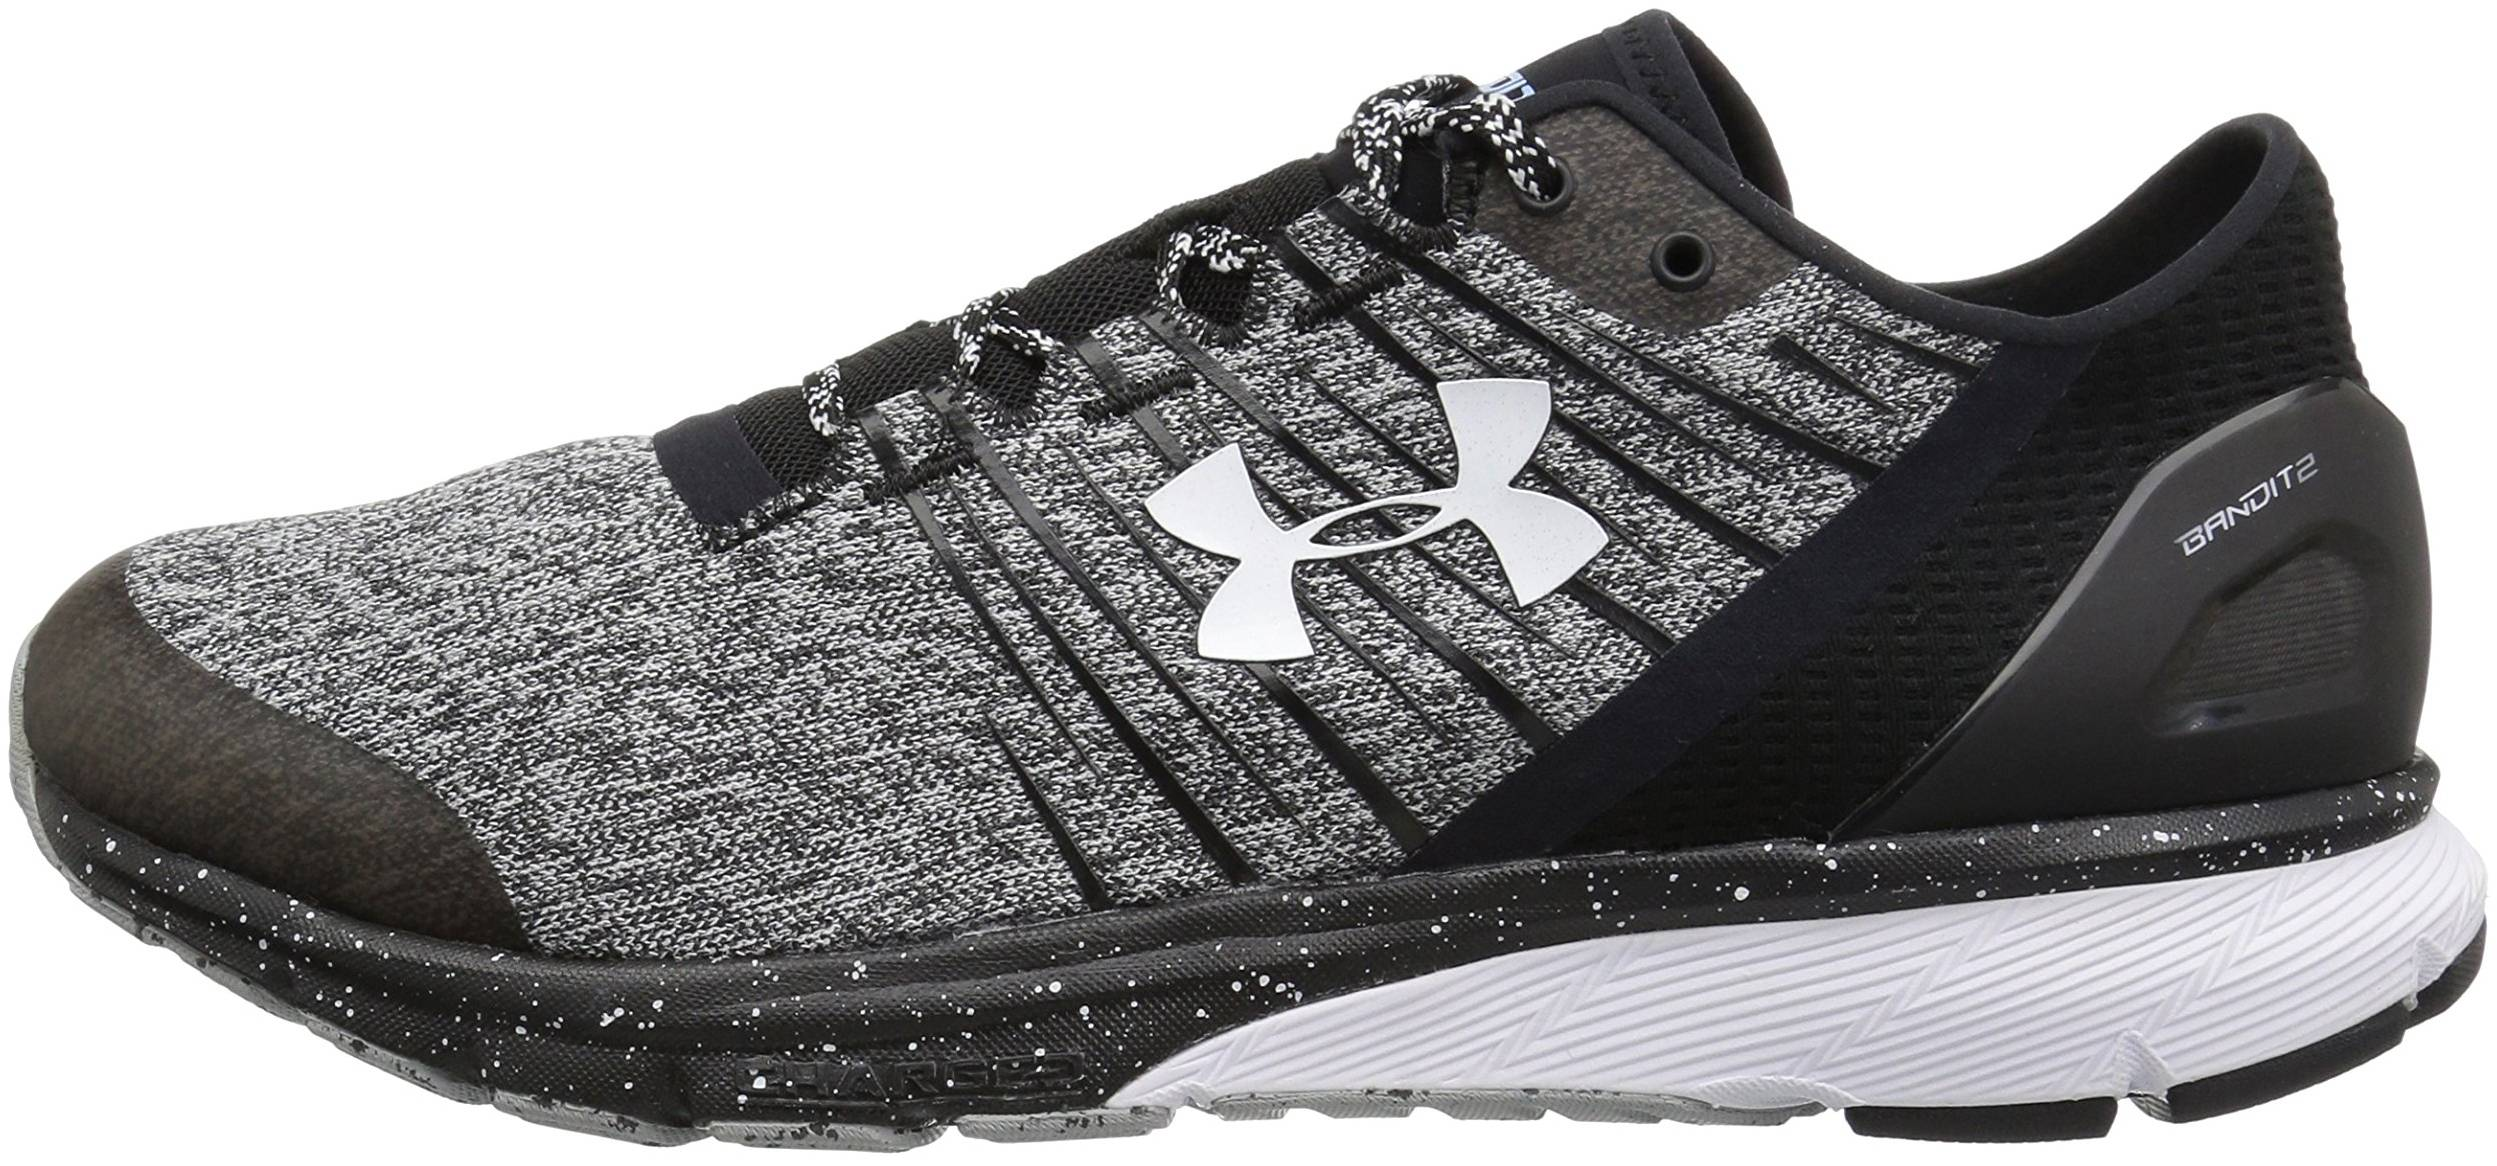 Review of Under Armour Charged Bandit 2